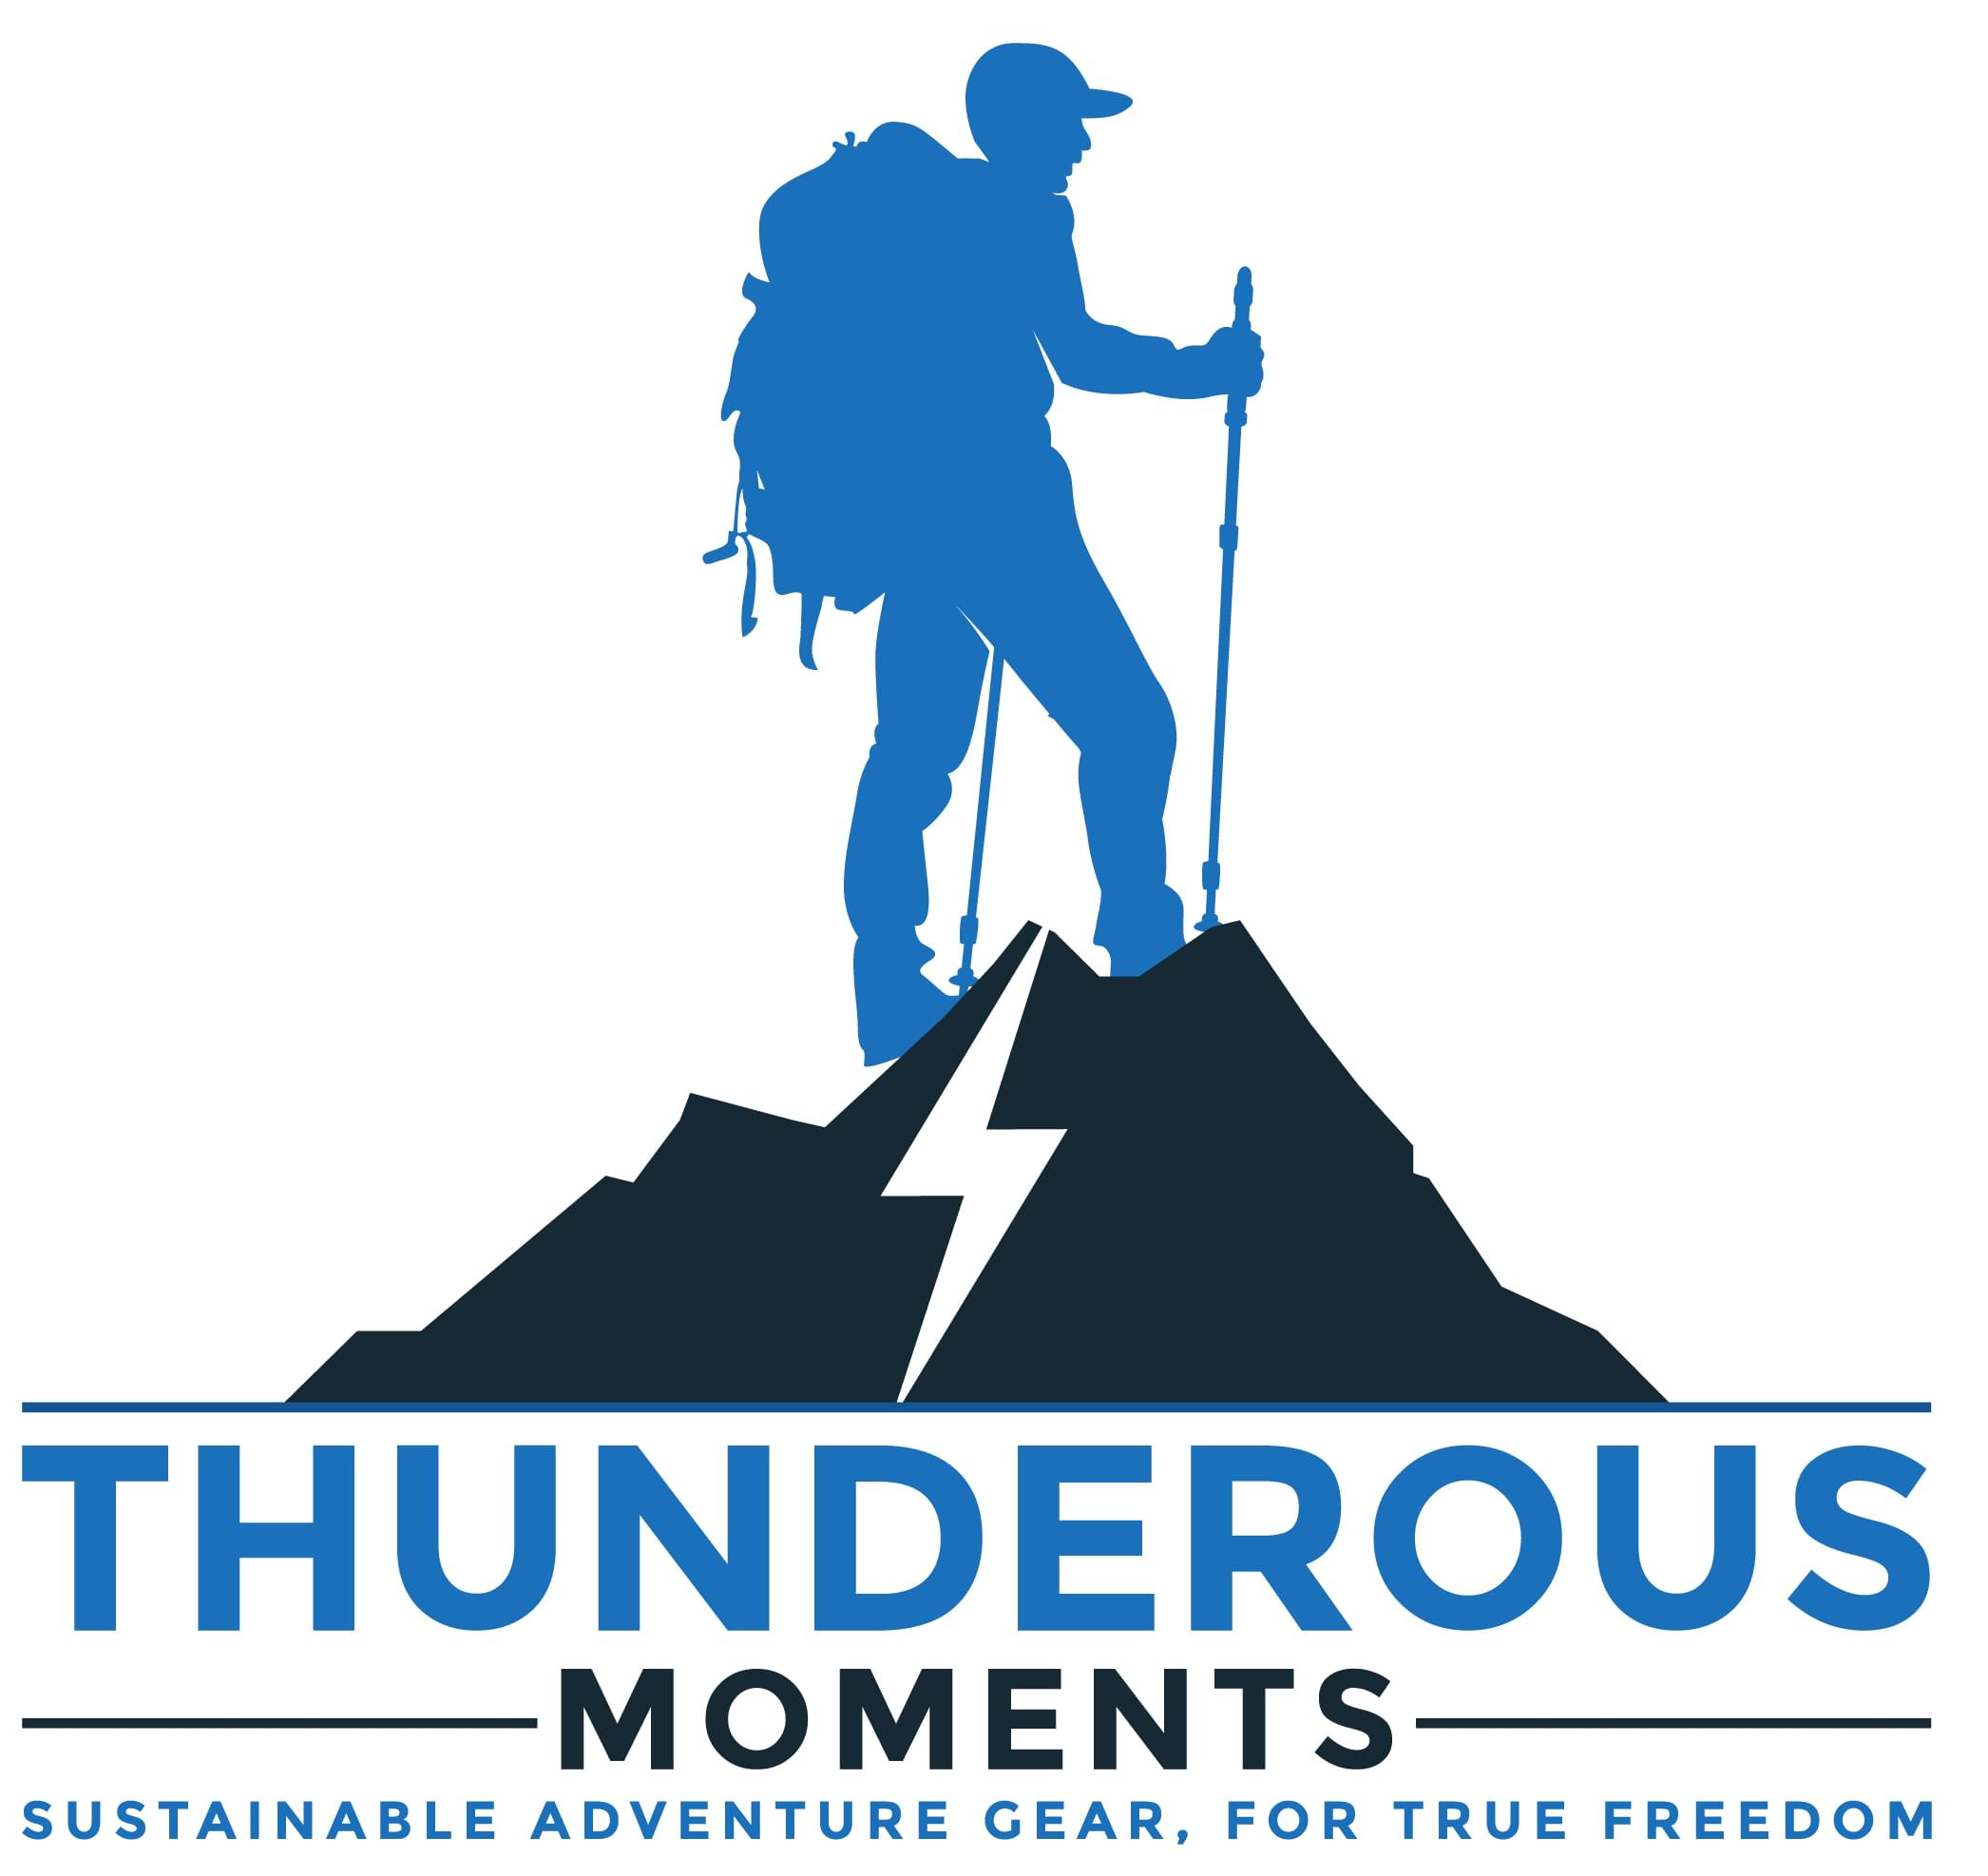 Thunderous Moments Camping Quilt Legendary Down Hiking Quilt so You can go Farther Handmade in North Carolina Ultra Light